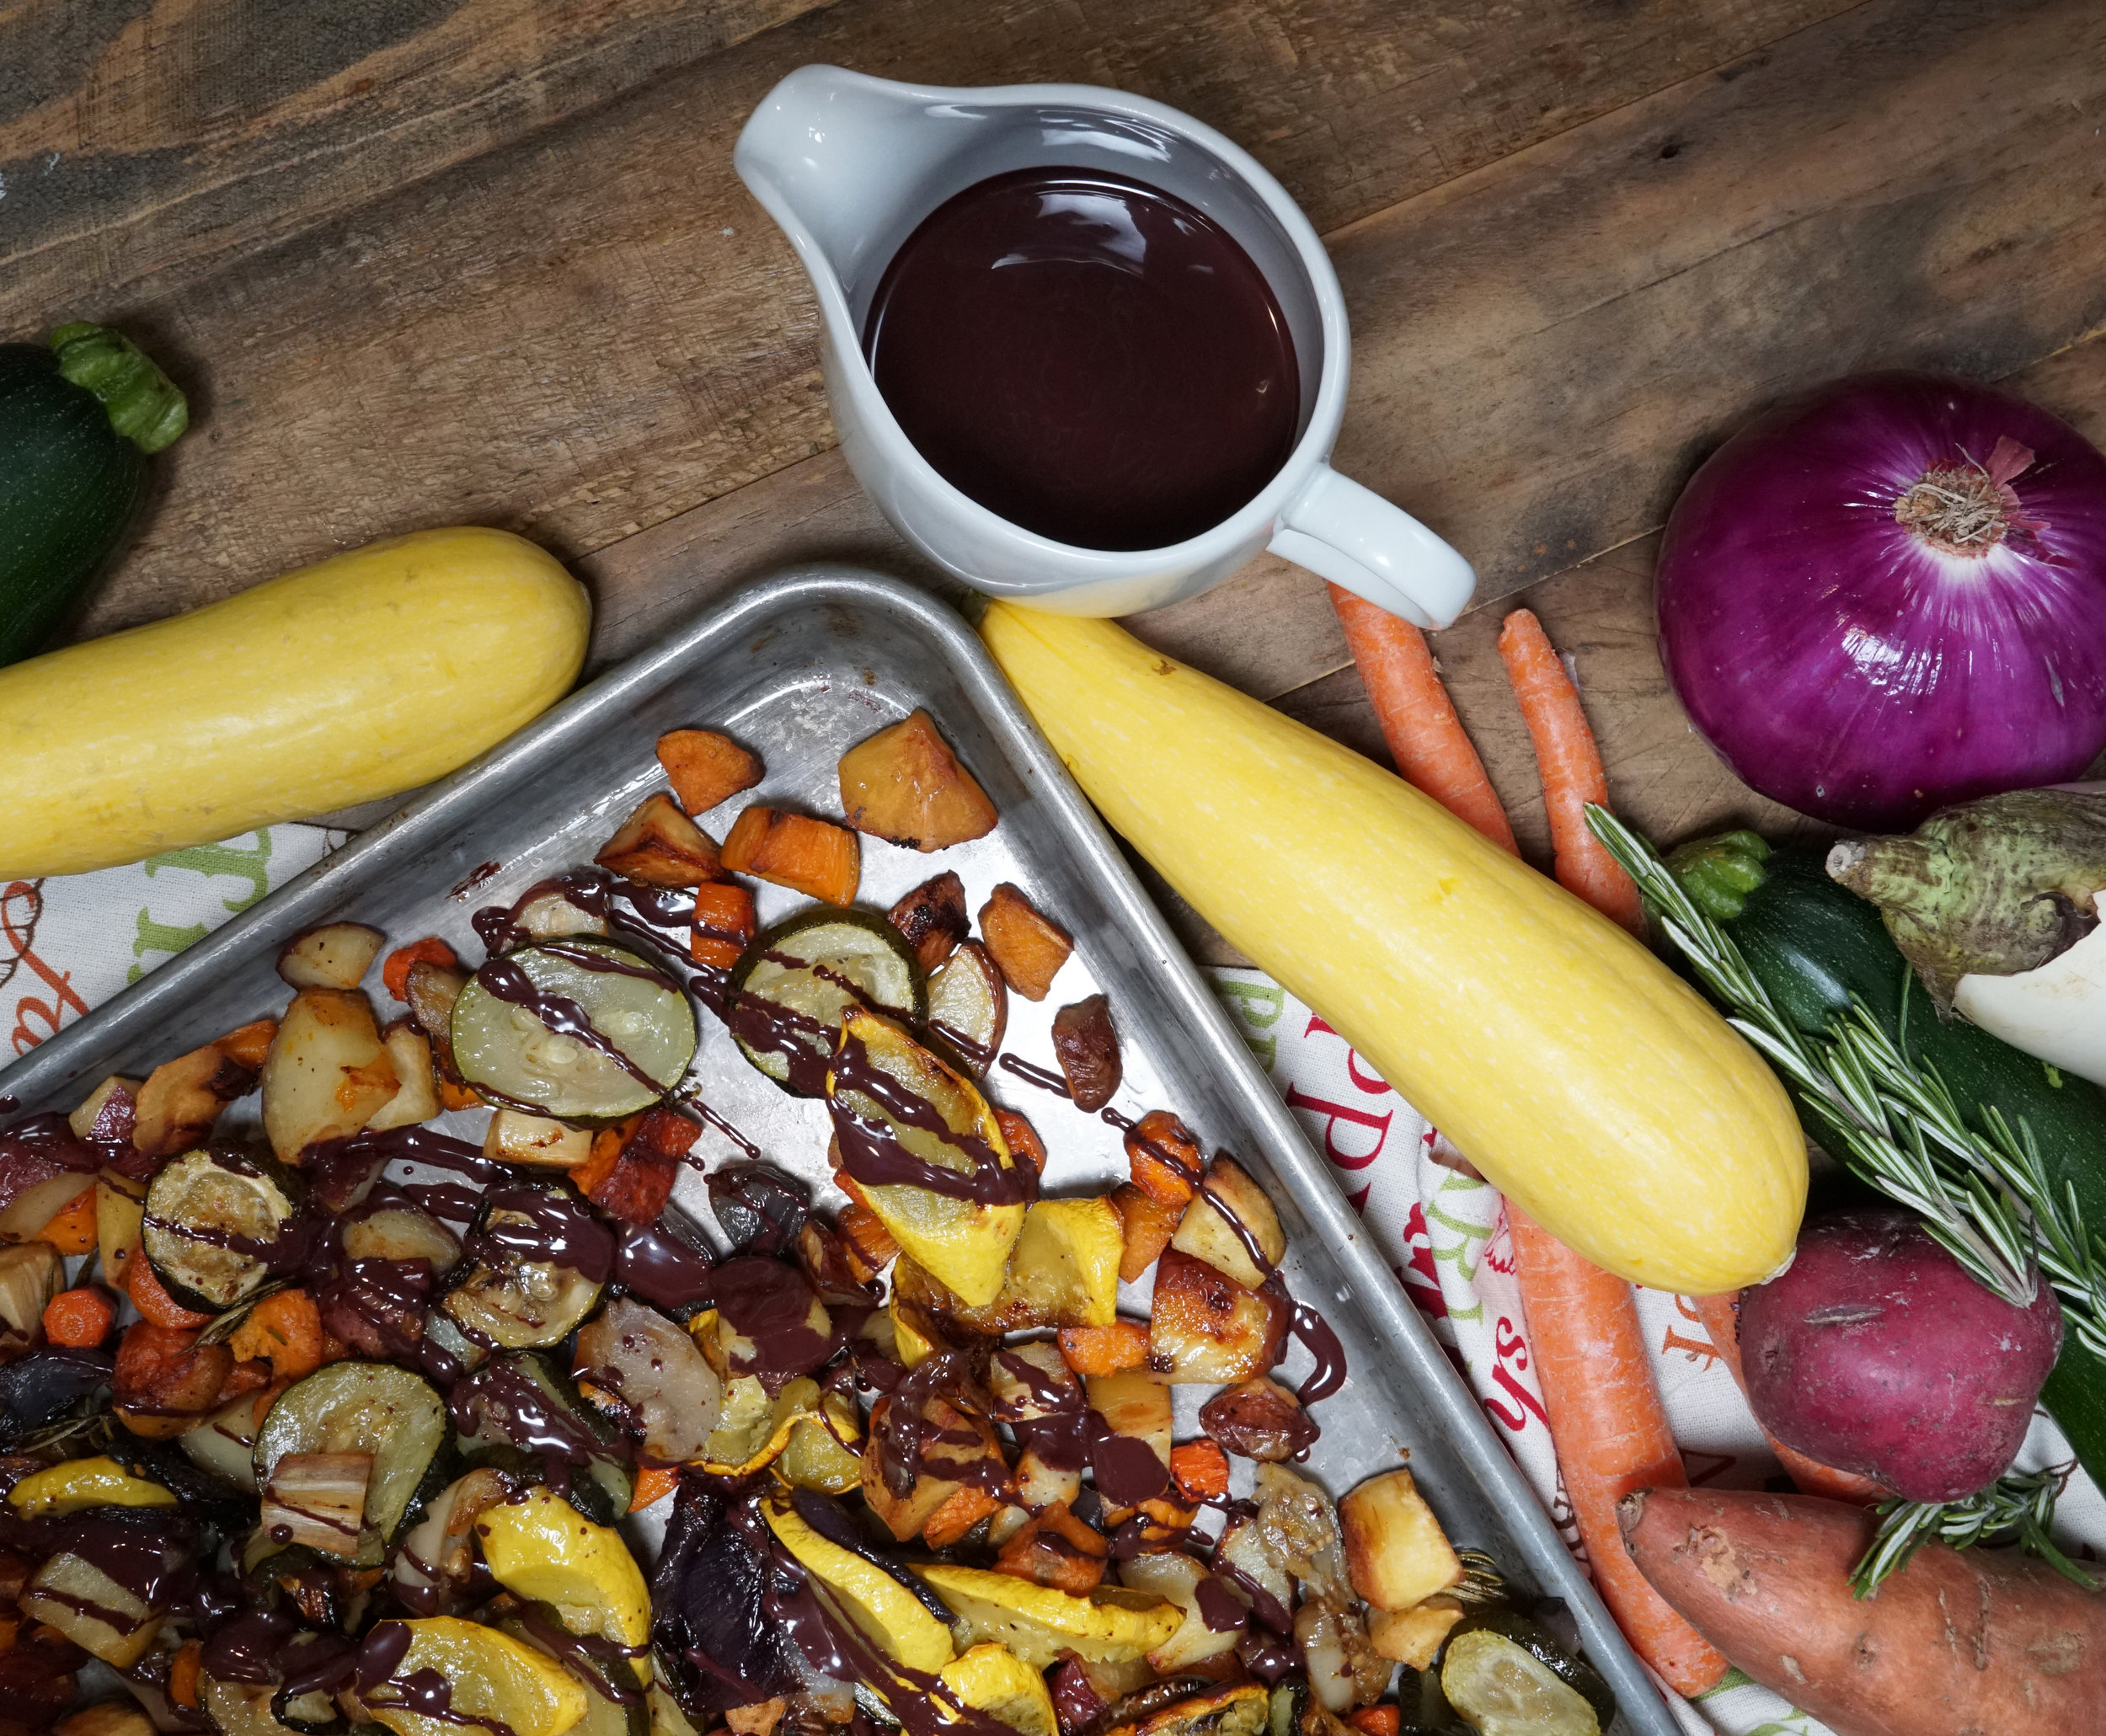 Roasted Vegetables with Chocolate Rosemary Sauce C.jpg